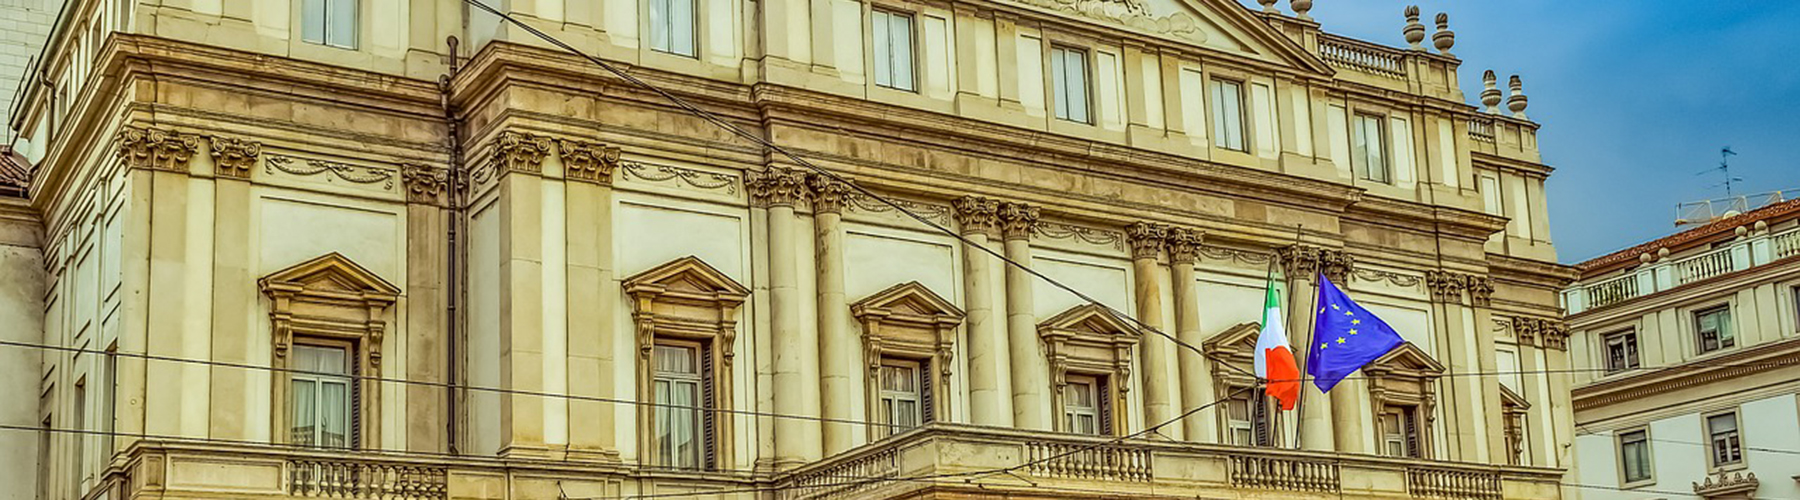 Milan – Hostels close to Teatro alla Scala. Maps for Milan, Photos and Reviews for each hostel in Milan.